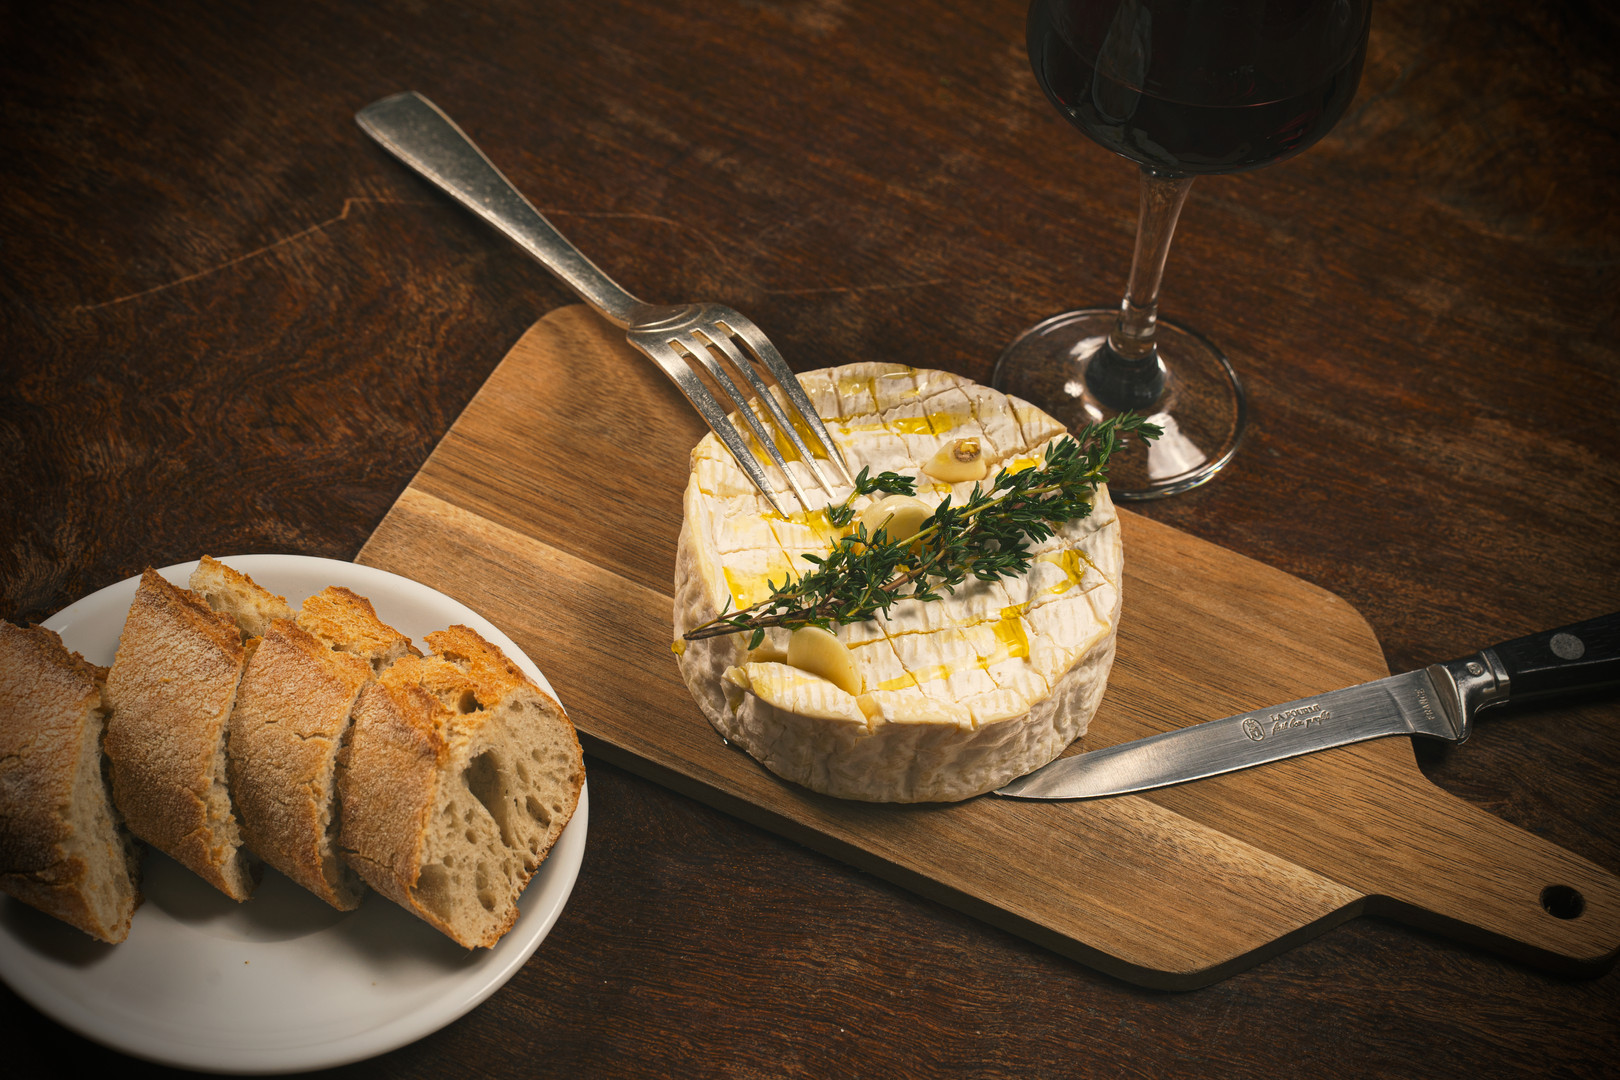 Baked camembert with honey